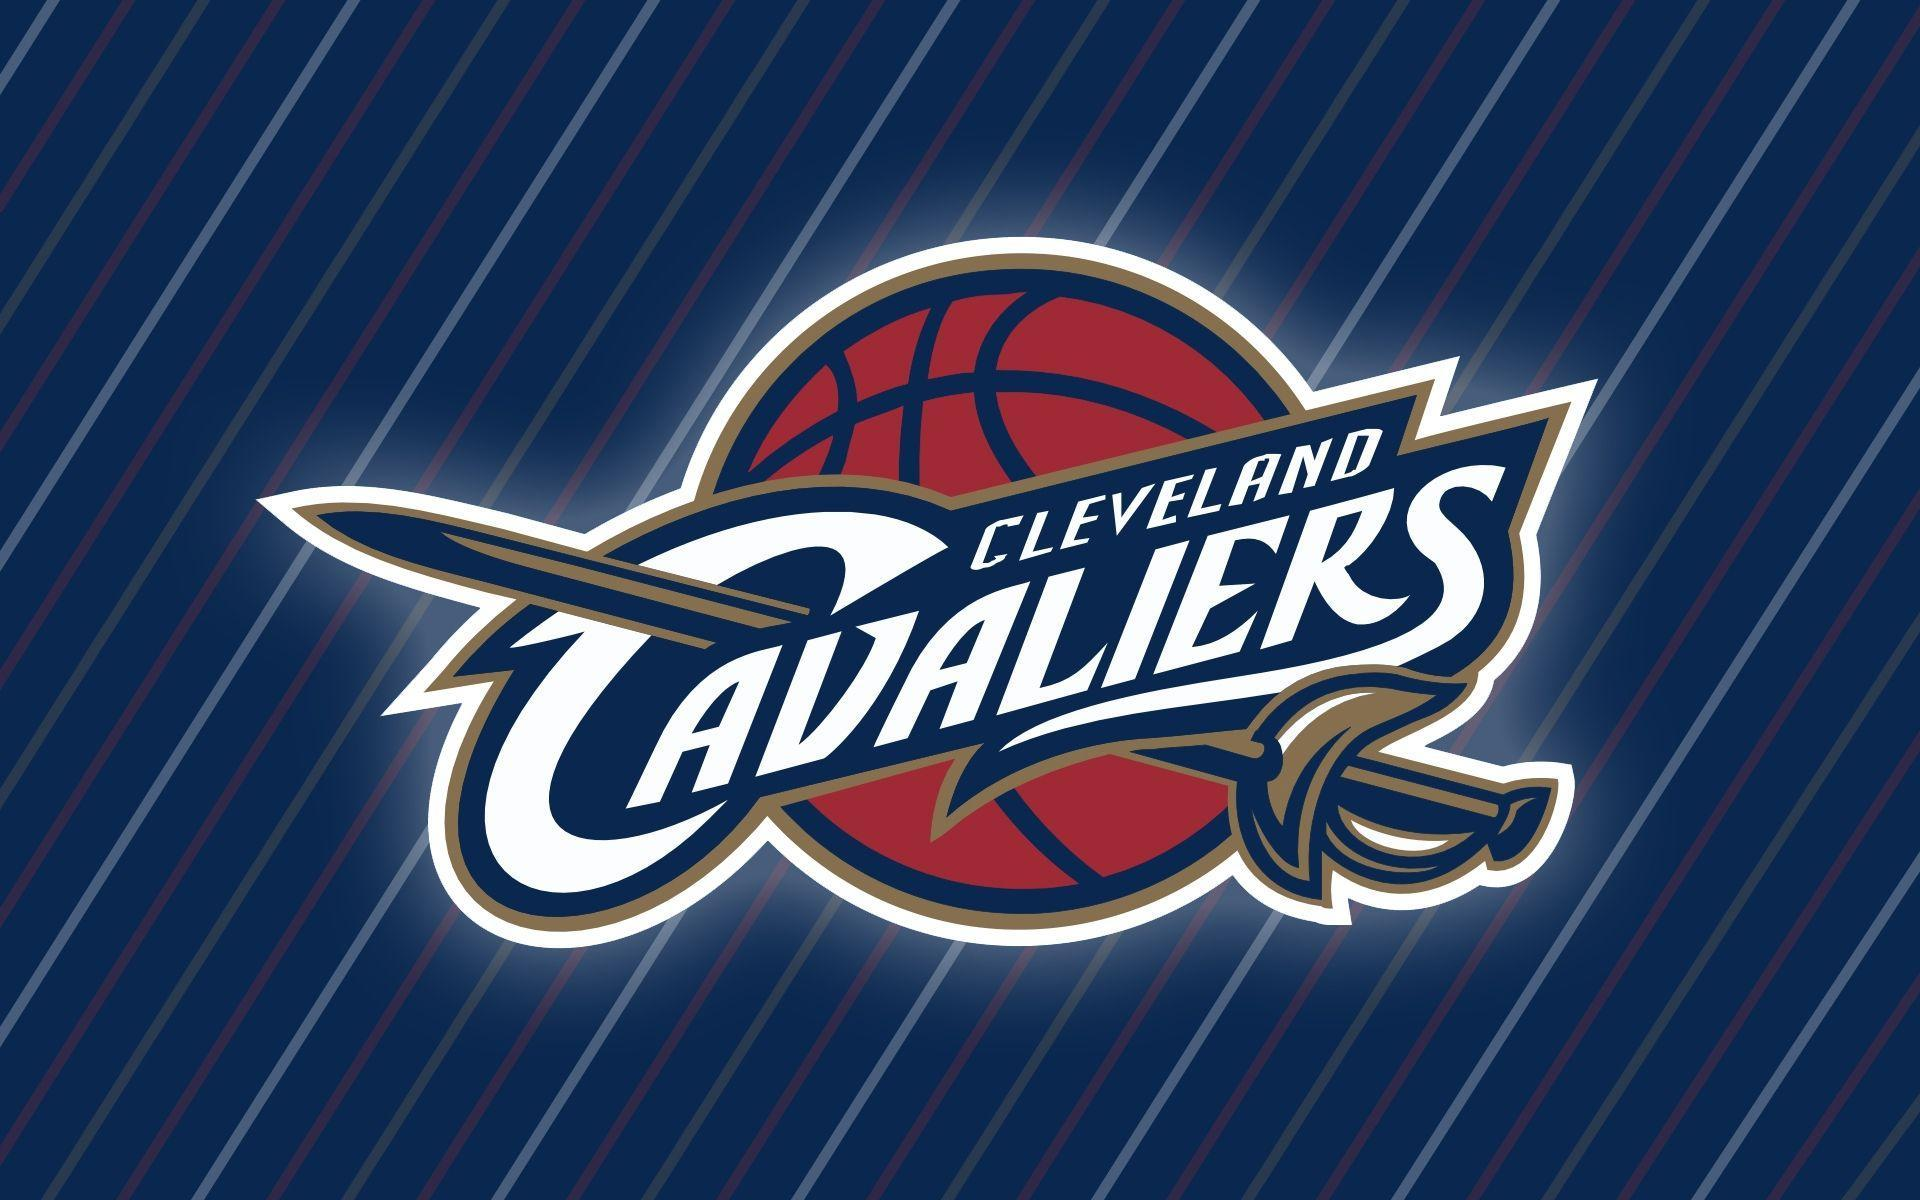 Cleveland Cavaliers Logo Wallpapers HD